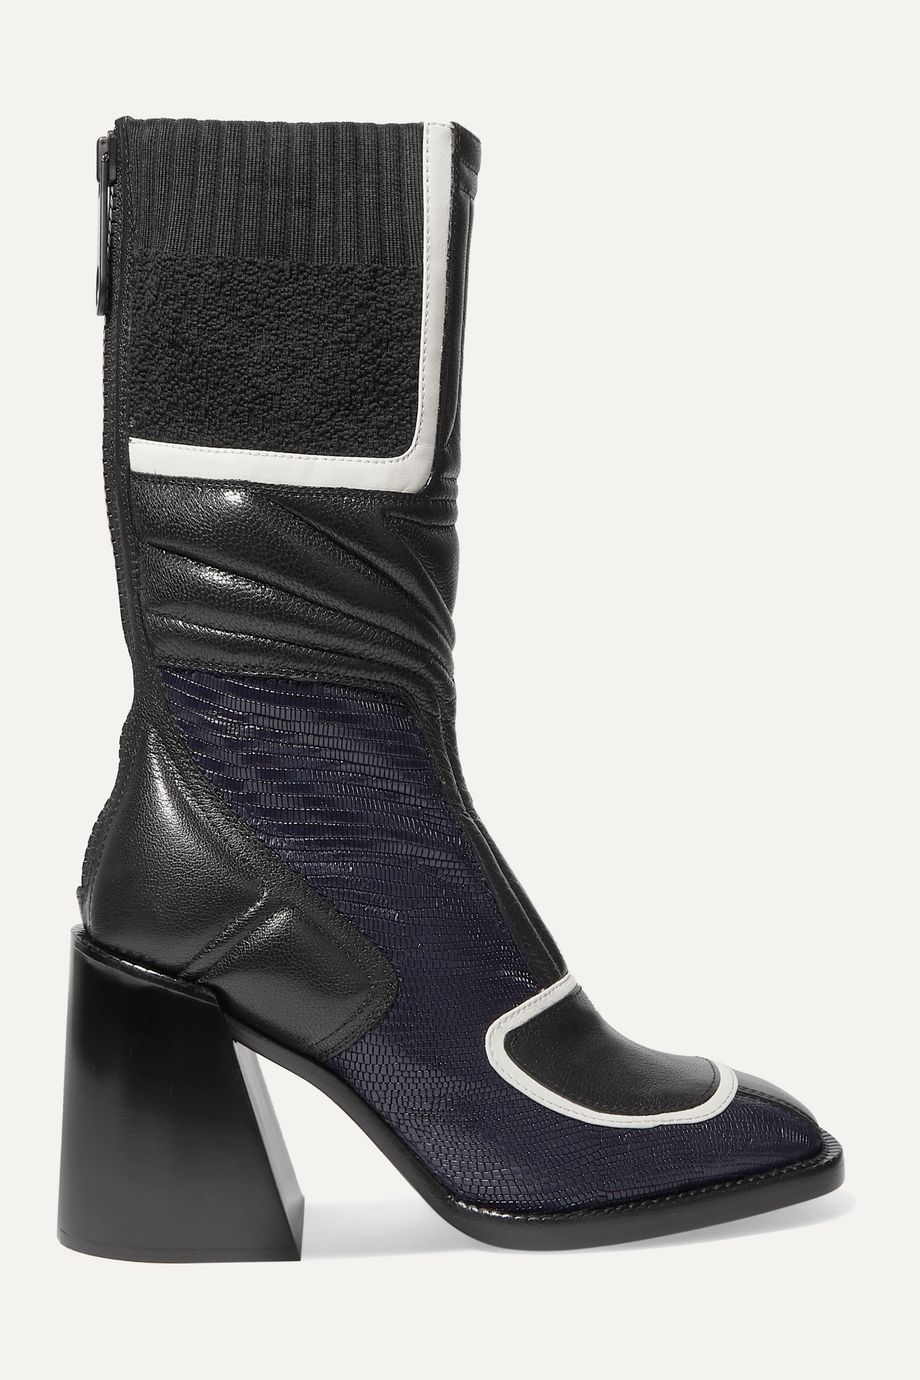 Chloé Belle paneled quilted glossed-leather ankle boots